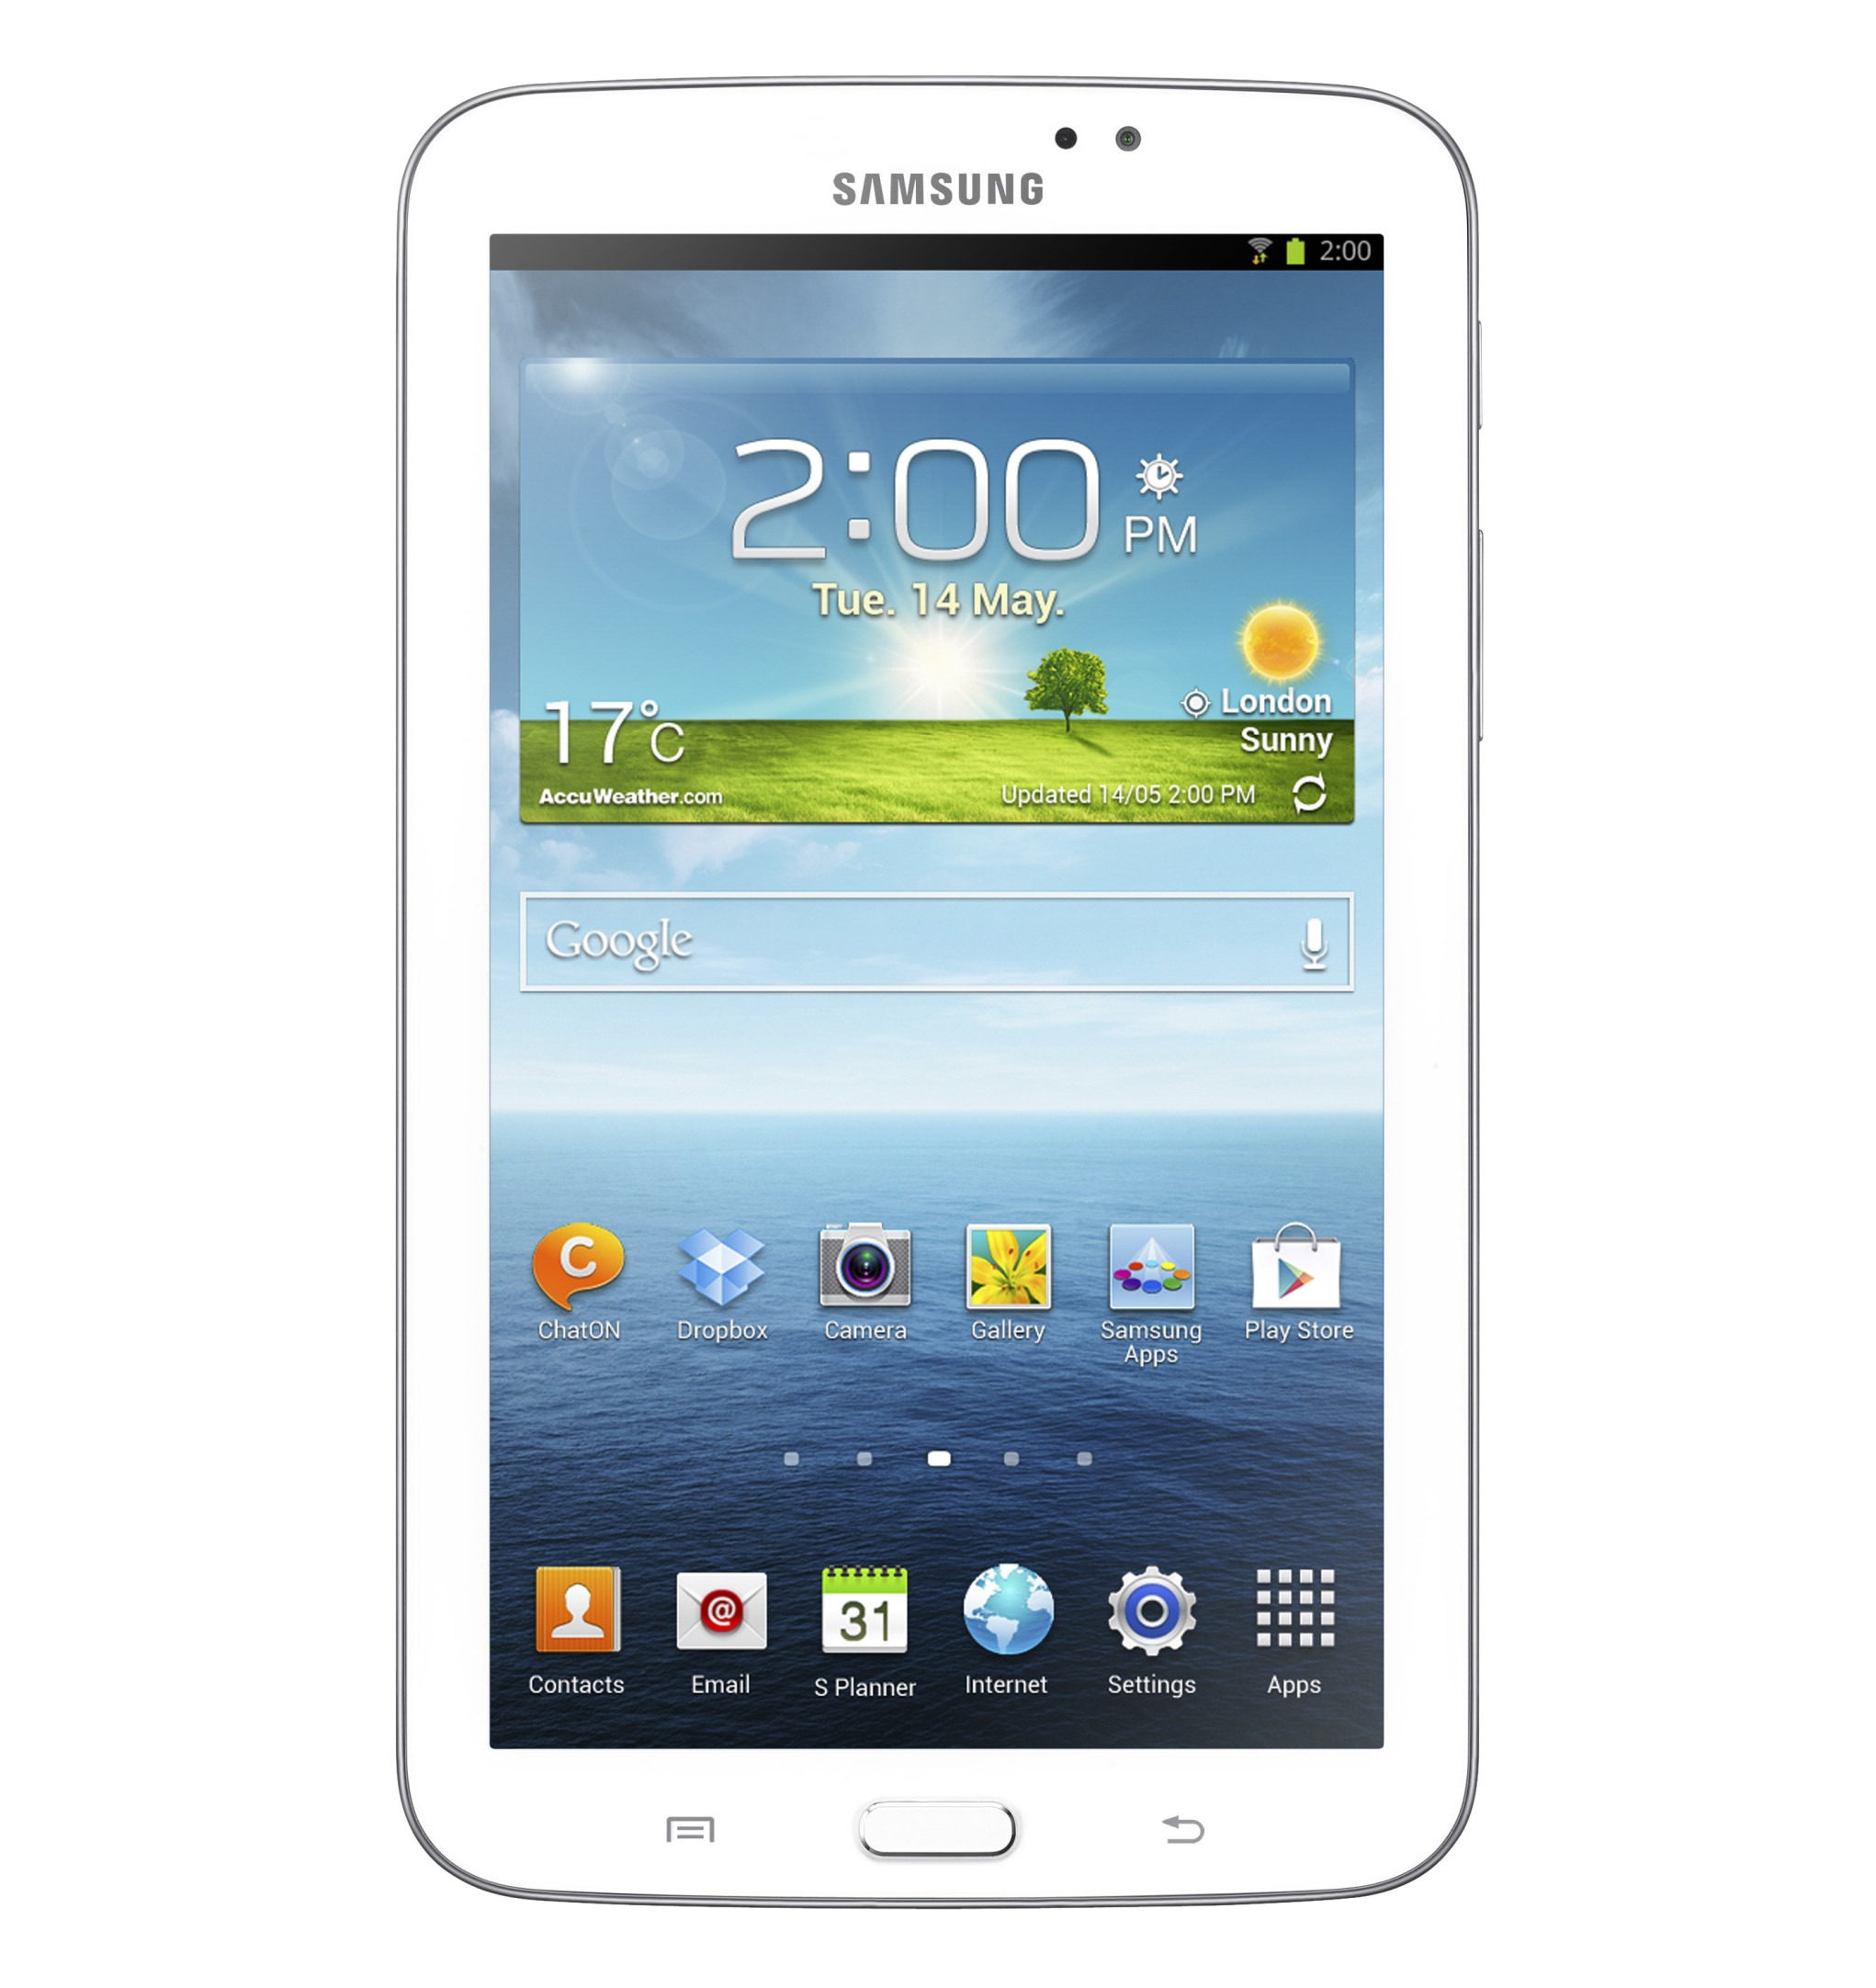 Samsung Officially Reveals The 7-Inch Galaxy Tab 3 - Budget-Grade